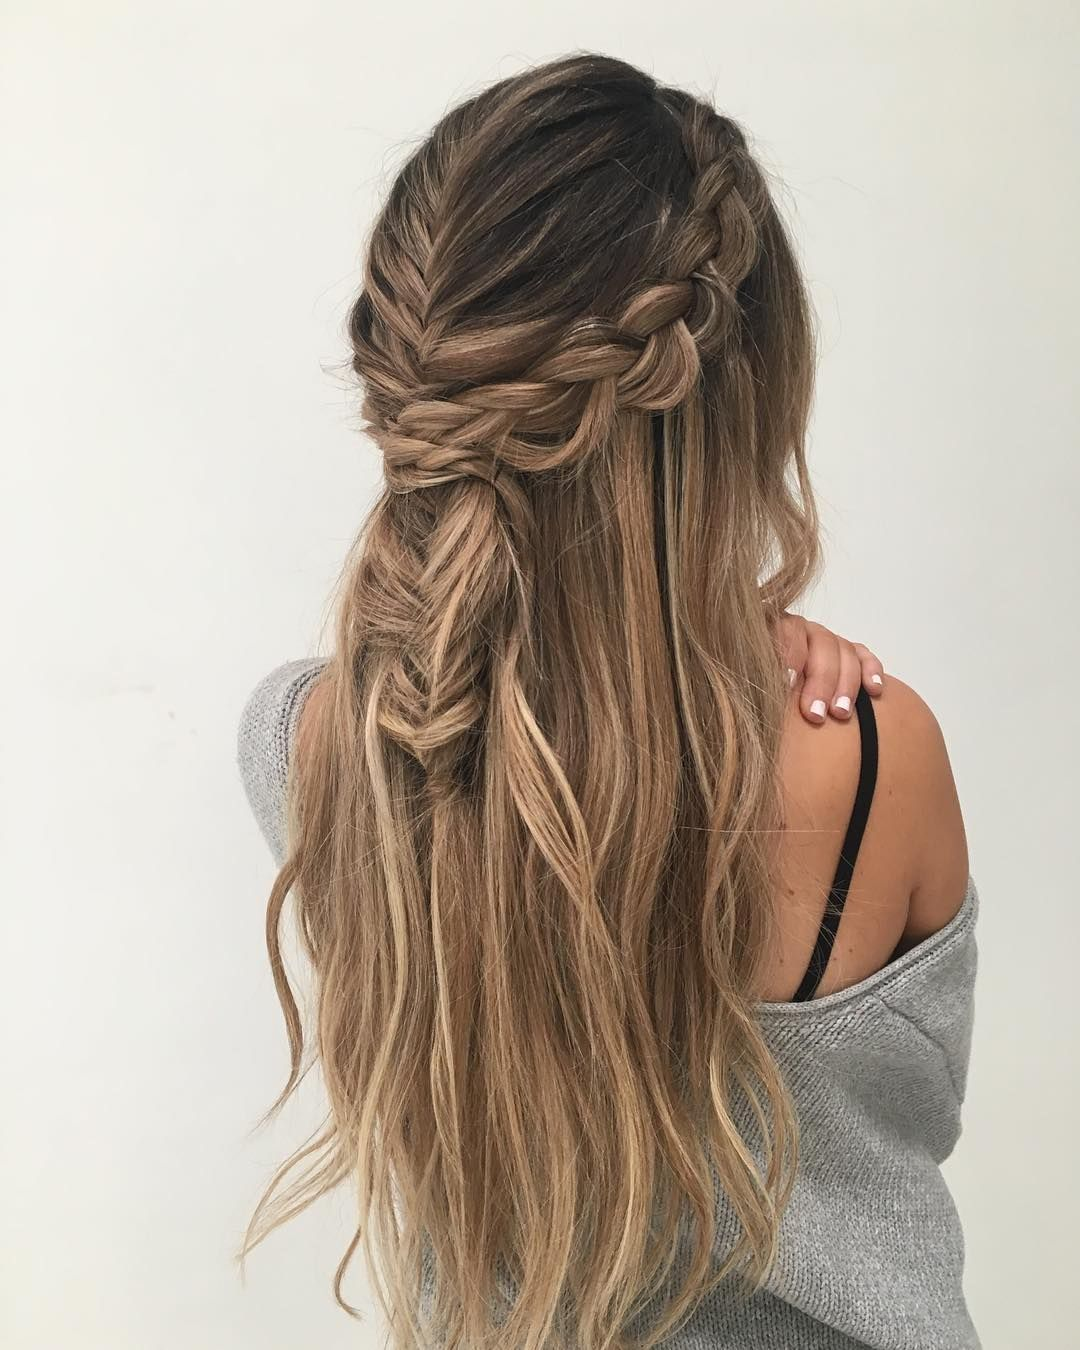 39 Trendy Messy Chic Braided Hairstyles Braided Crown Hairstyles Hair Styles Womens Hairstyles